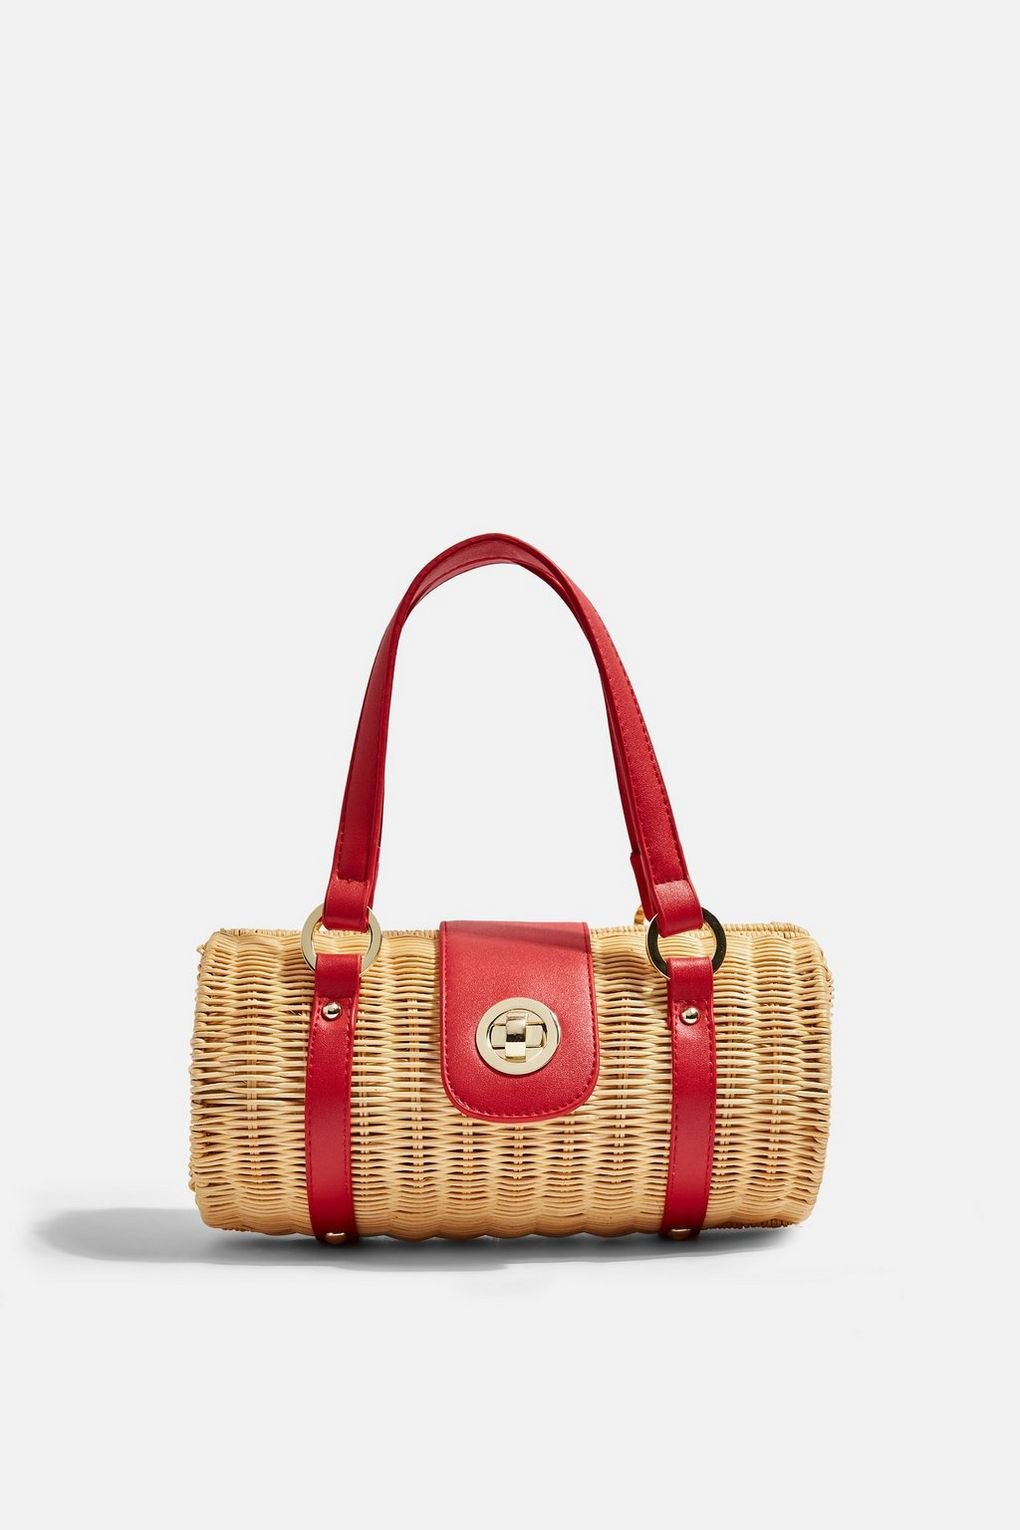 SYDNEY Straw Bowler Bag - Bags & Wallets - Bags & Accessories - Topshop USA